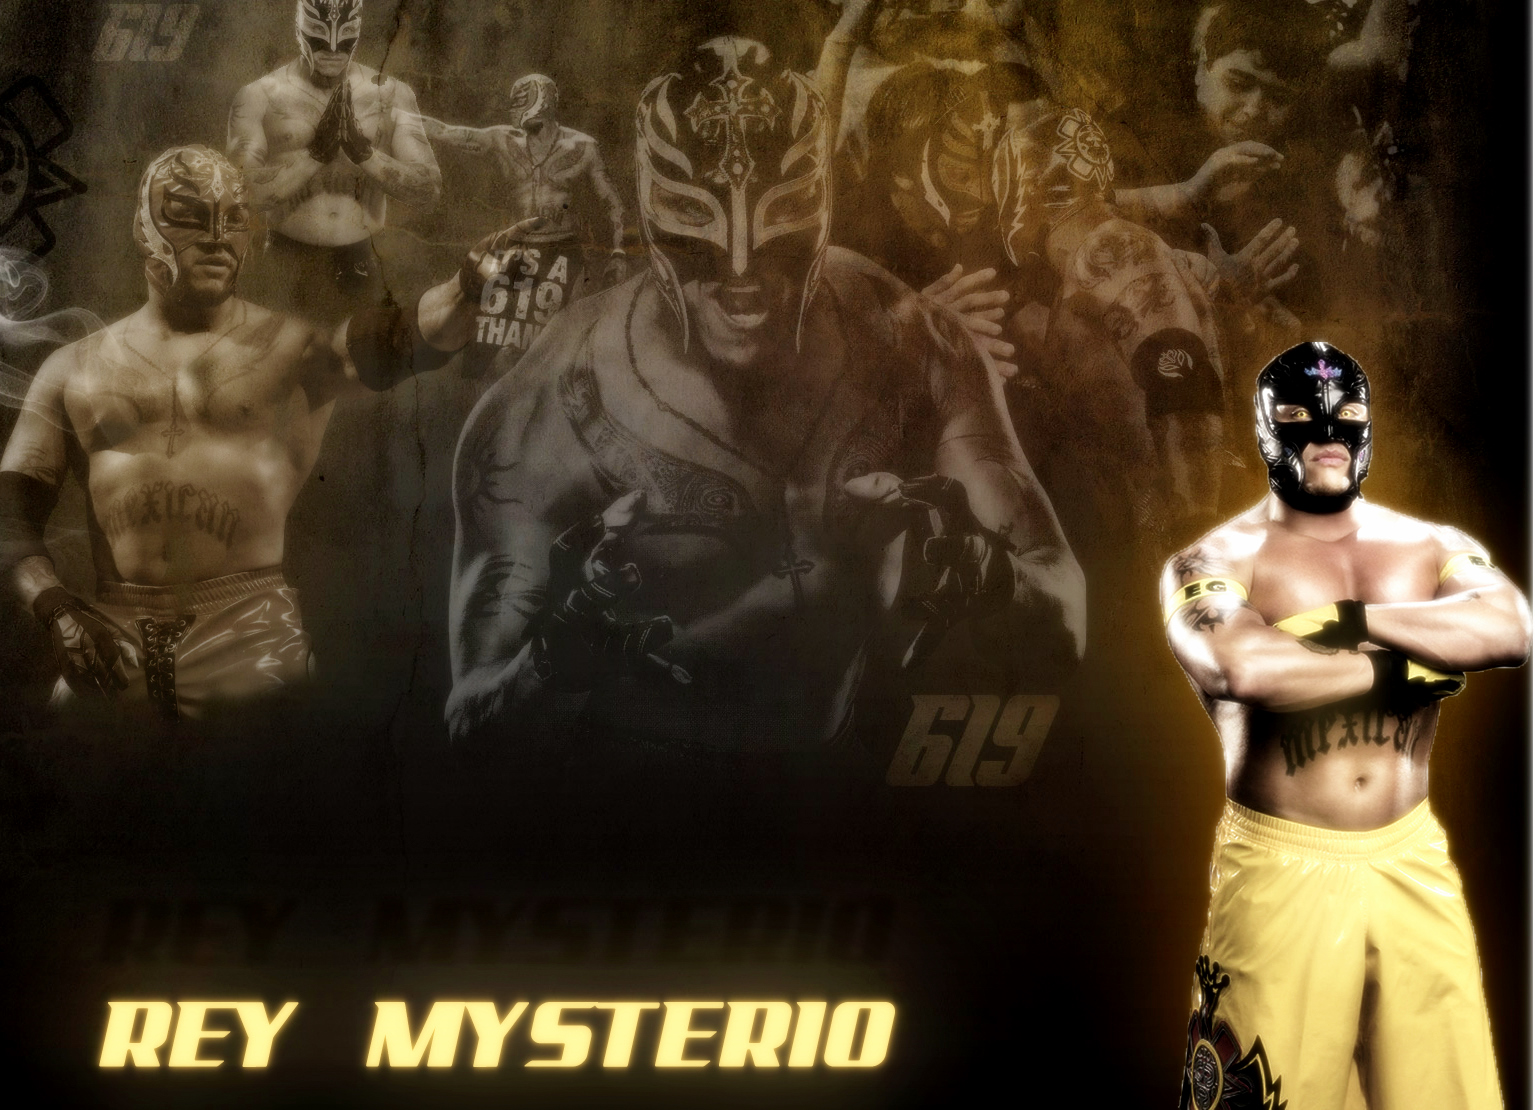 http://4.bp.blogspot.com/-ZsTygZxd__Y/T2BWIkE0u4I/AAAAAAAABLg/ykPLIXt_WH0/s1600/Rey+Mysterio+hero+of+wwe+wrestlemania+wallpapers.jpg